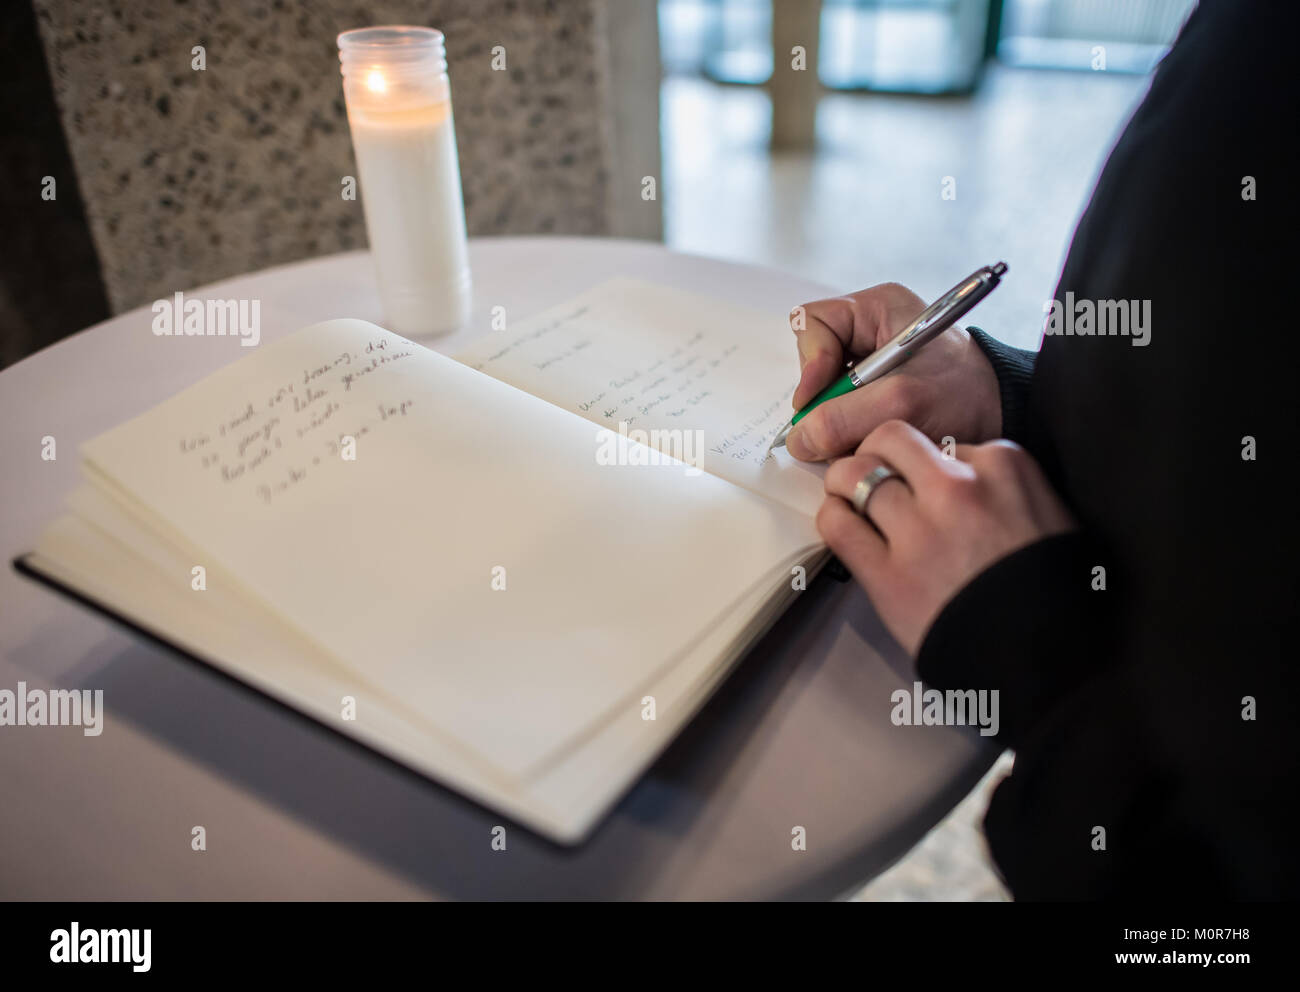 Luenen, Germany. 24th Jan, 2018. A young man registering himself in the city's condolence book in City Hall - Stock Image